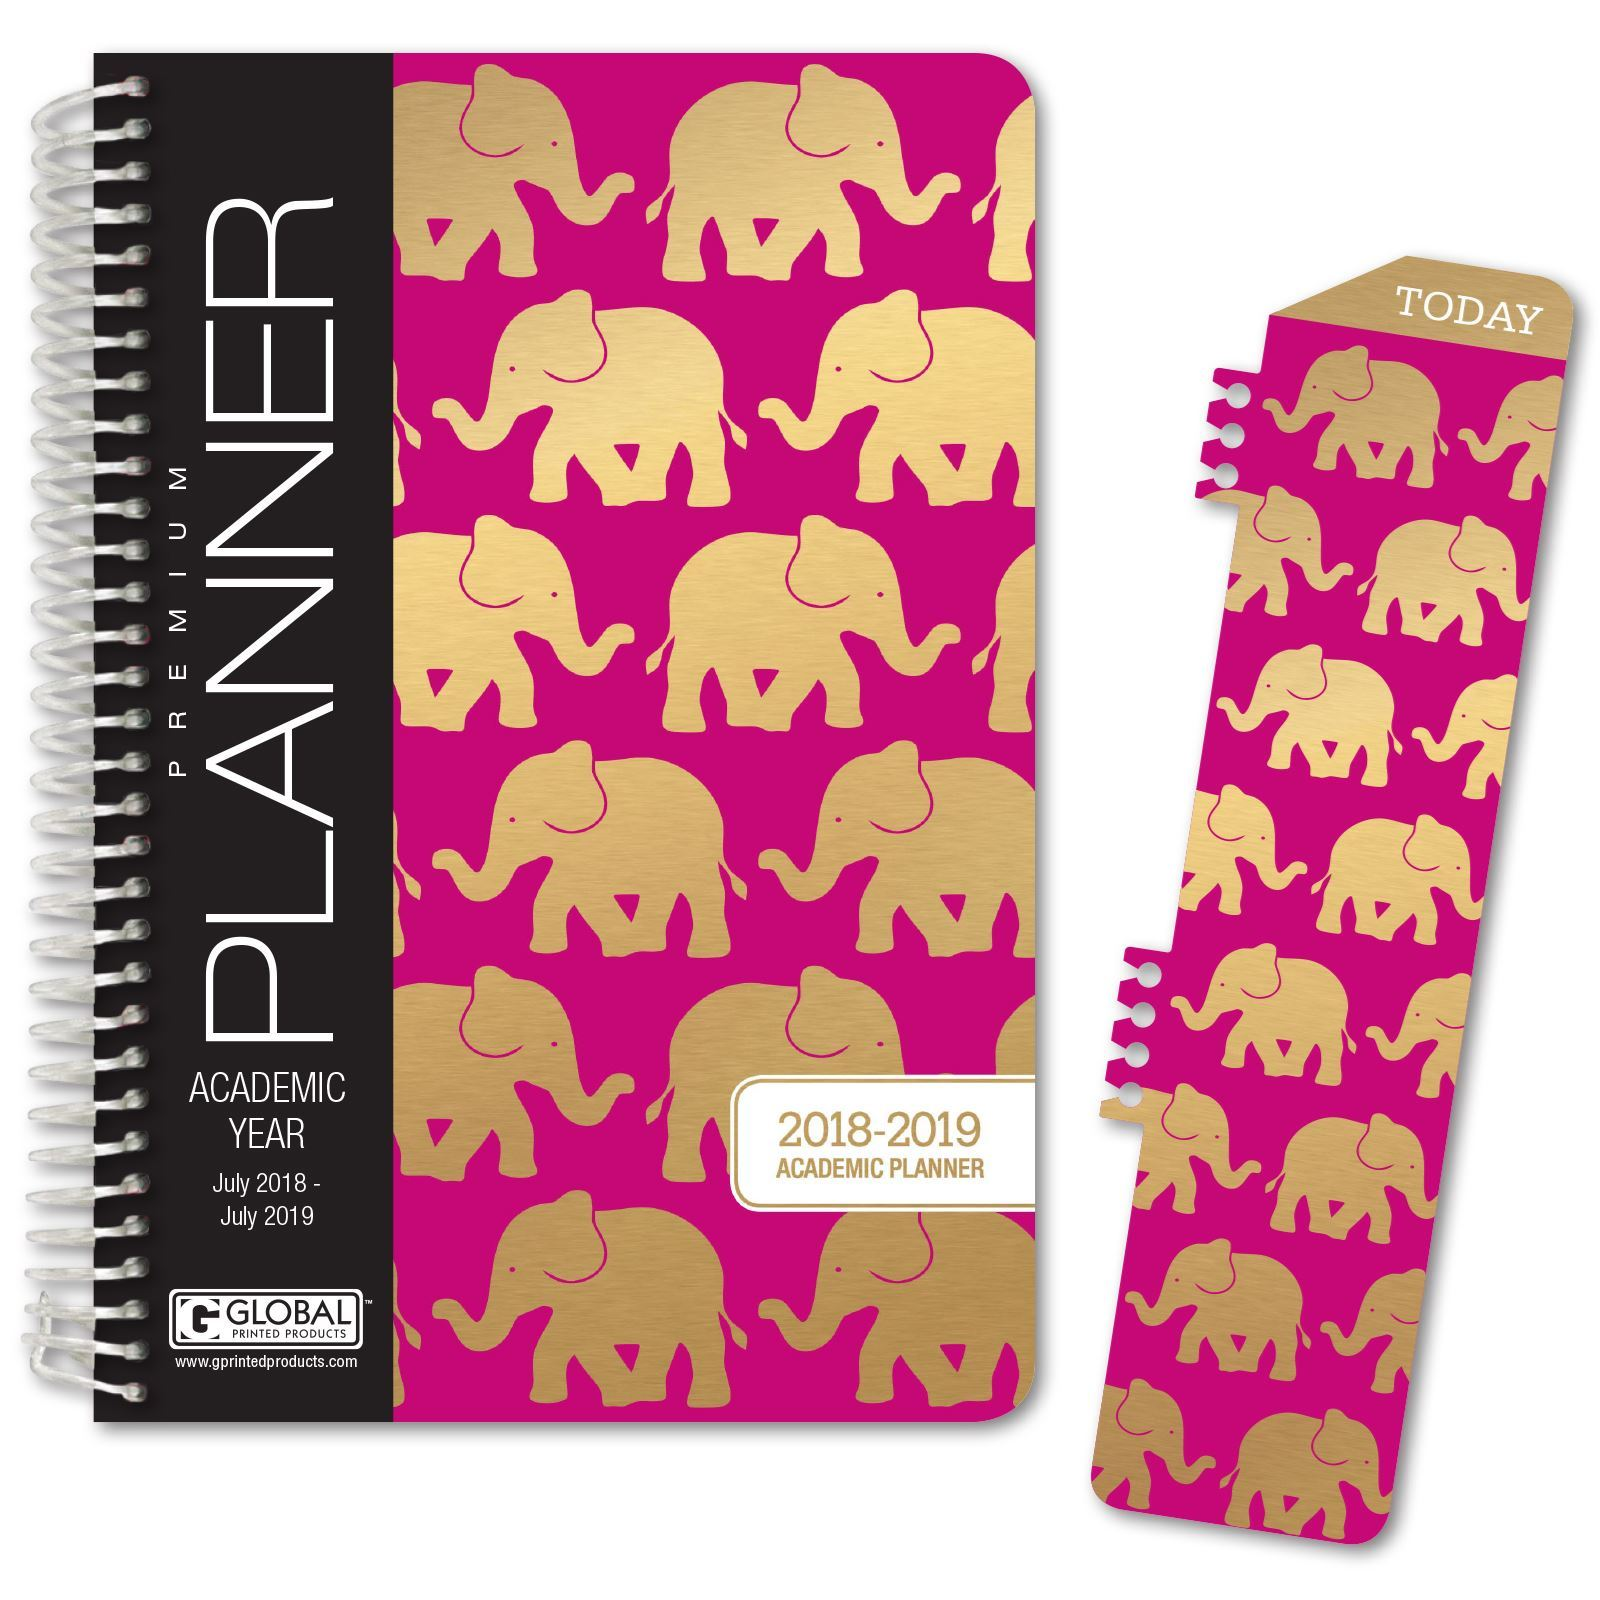 HARDCOVER Academic Year Planner 2018-2019 5.5/'x8/' Daily Planner//Weekly Plan...